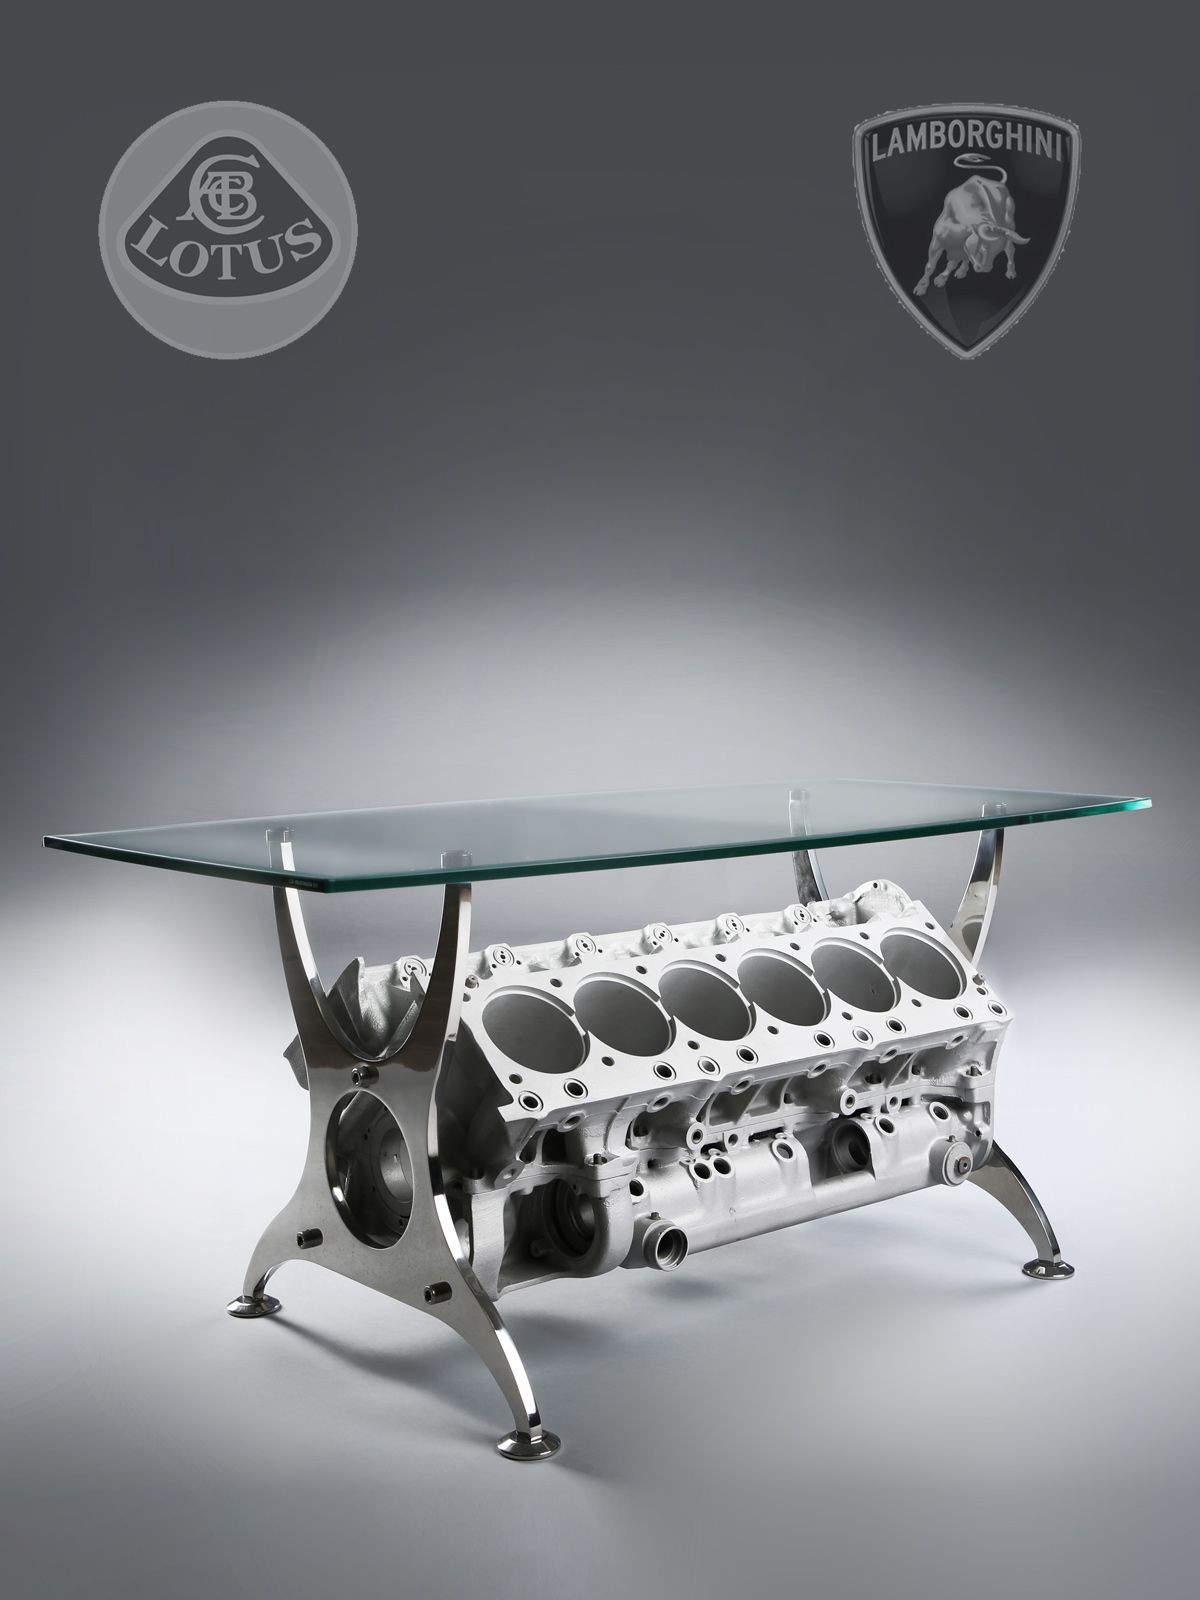 Bespoke Formula 1 Lamborghini Engine Block Table Engine block